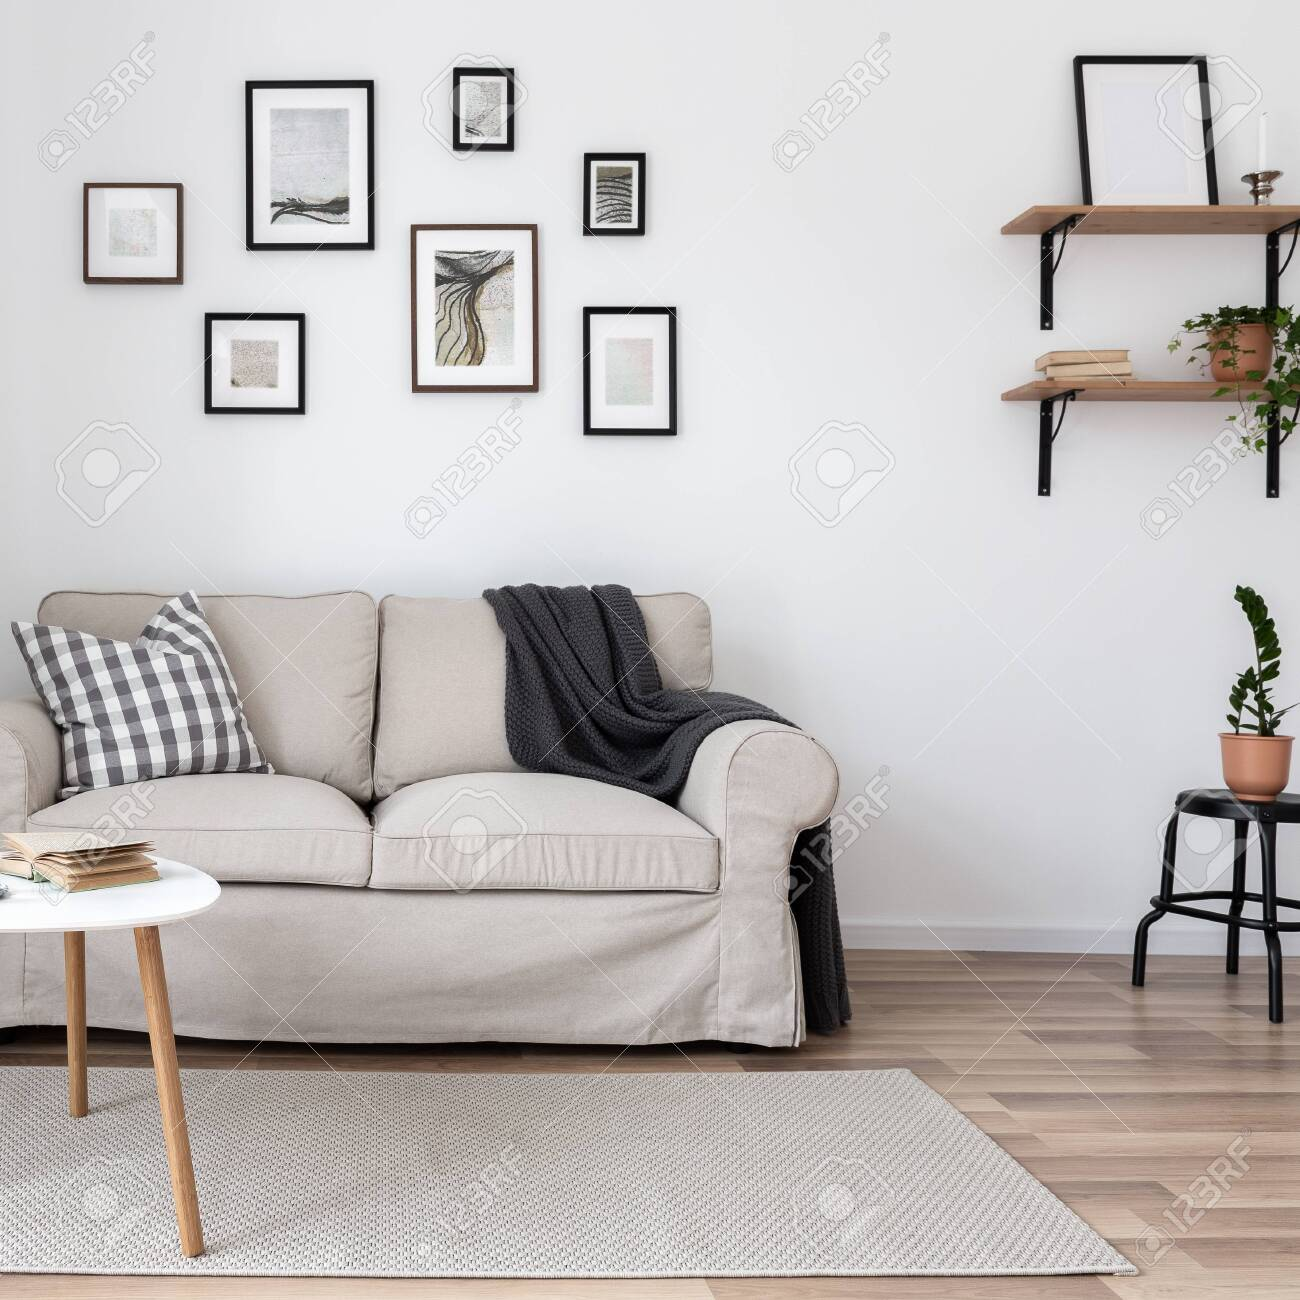 Simple Living Room With Wall Frames Sofa And Coffee Table Stock Photo Picture And Royalty Free Image Image 128416122